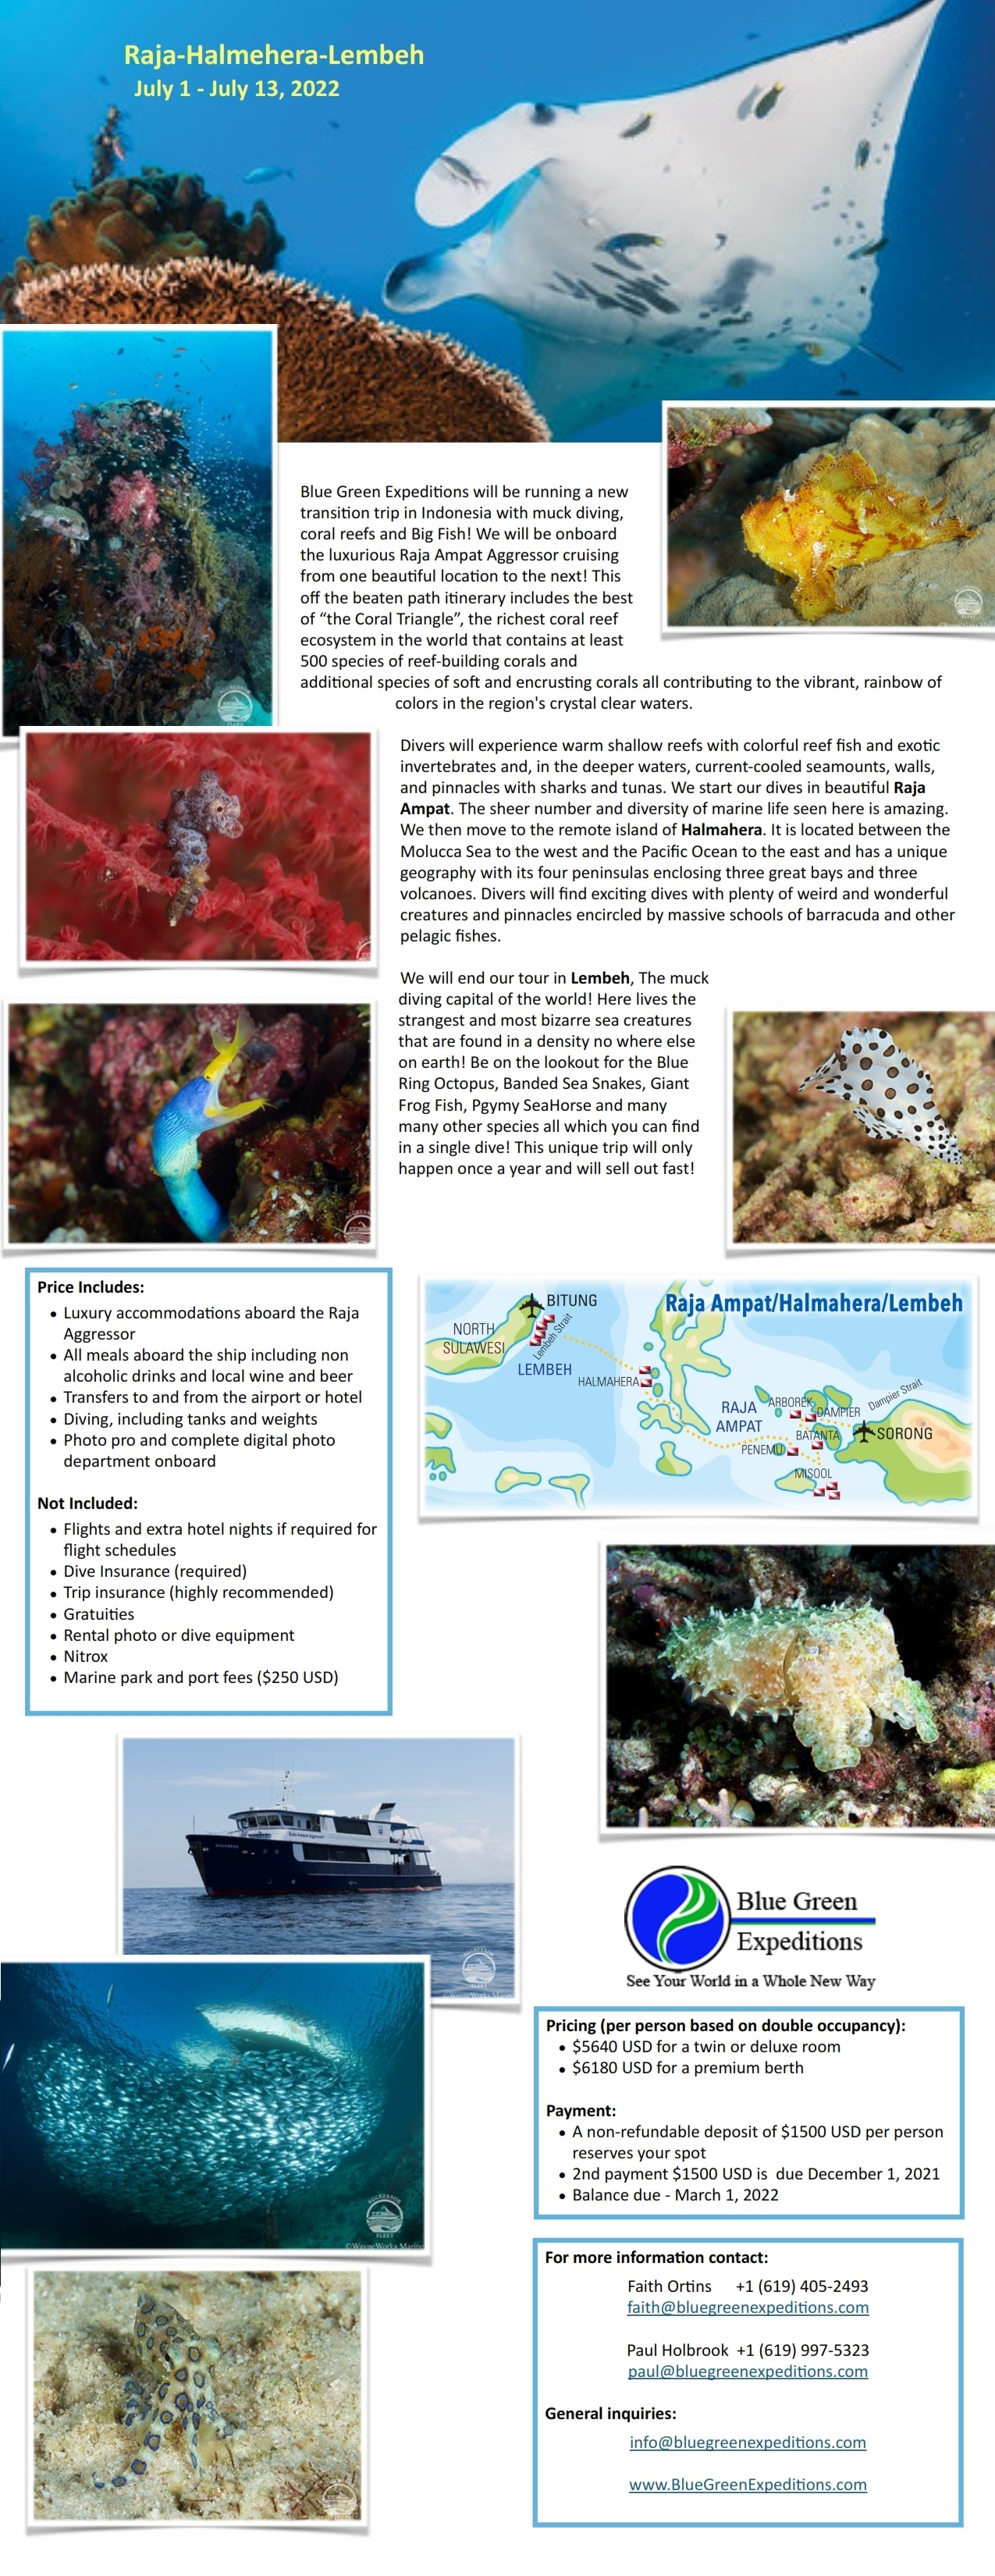 Raja - Halmehera - Lembeh expedition, July 1 - 13, 2022. Trip information and pricing. Flyer contains the same information.